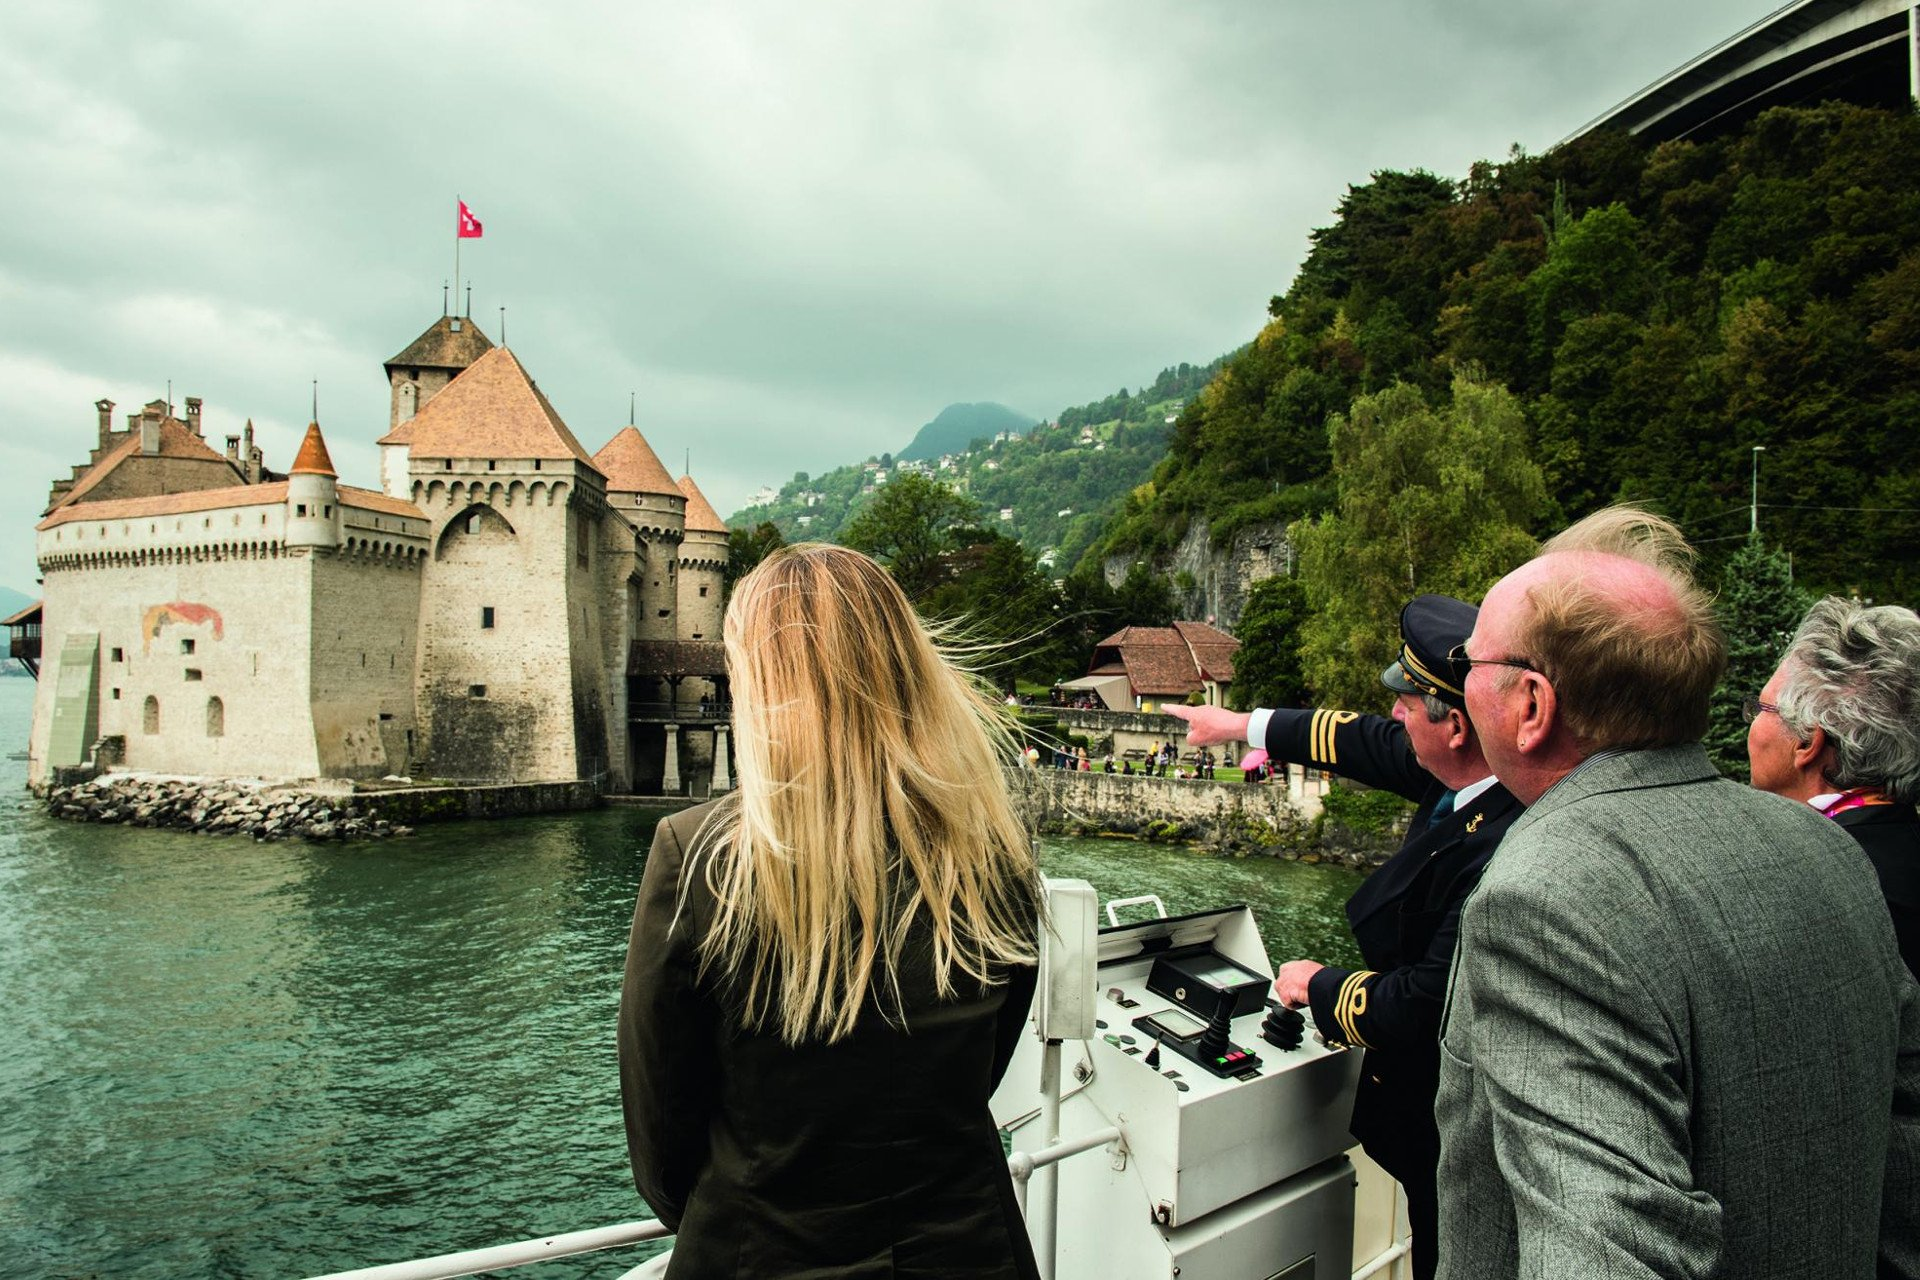 private tour-boat-captain-tourists-castle-Leman Lake-Switzerland